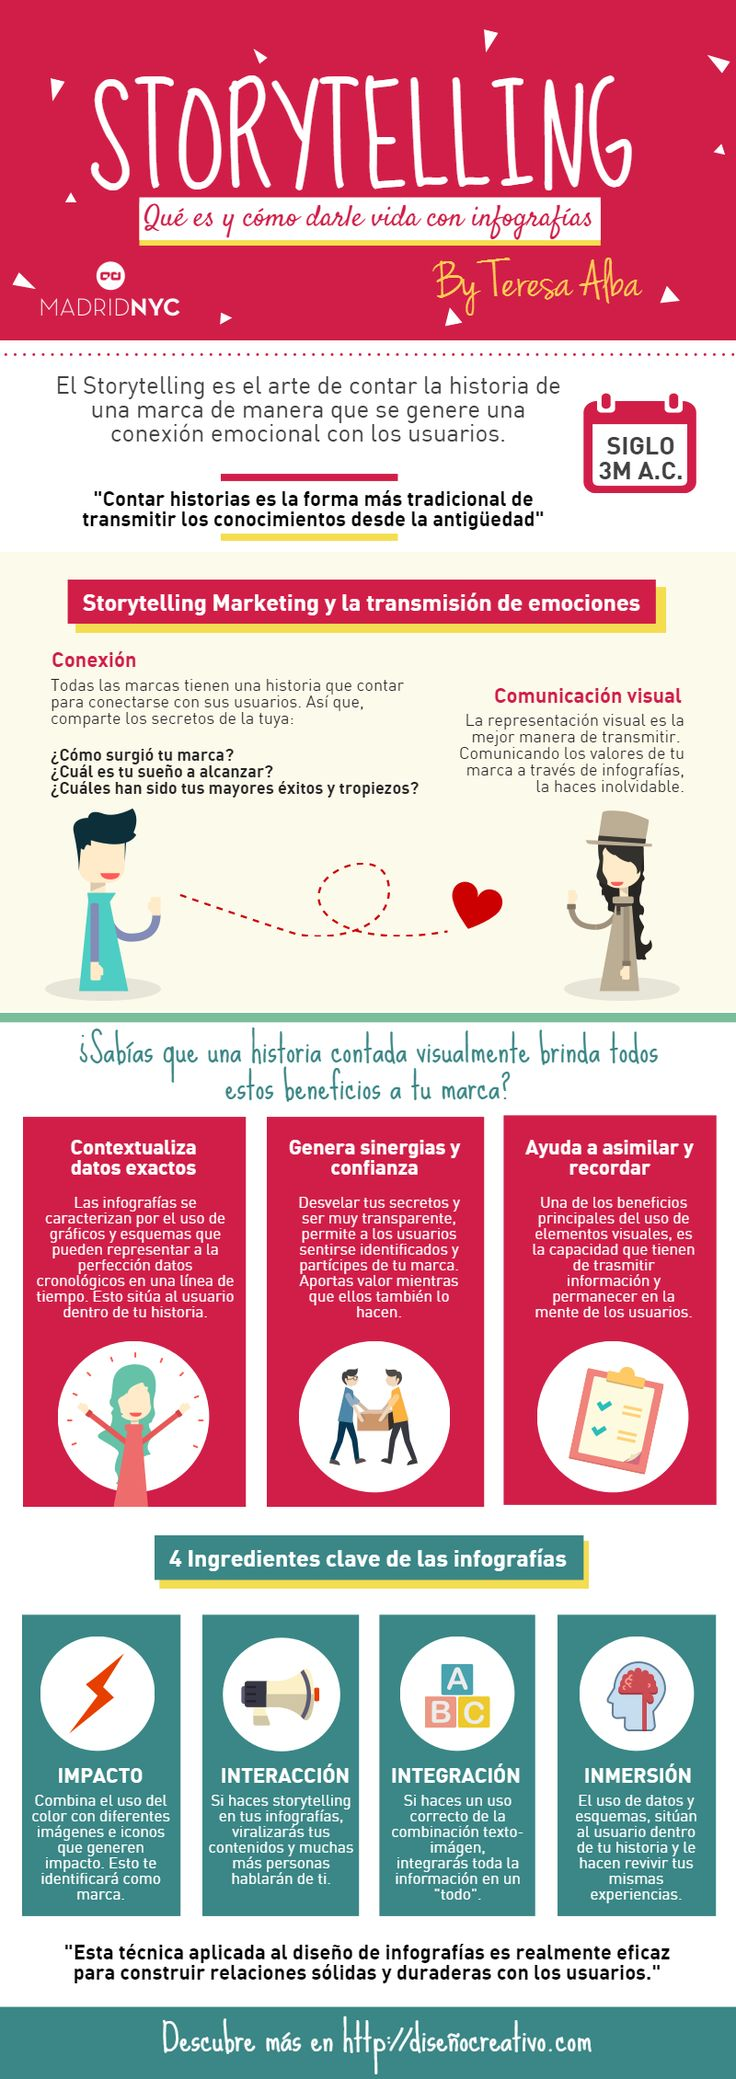 Ventajas del #Storytelling como Estrategia de #Marketing. Porque como dice…